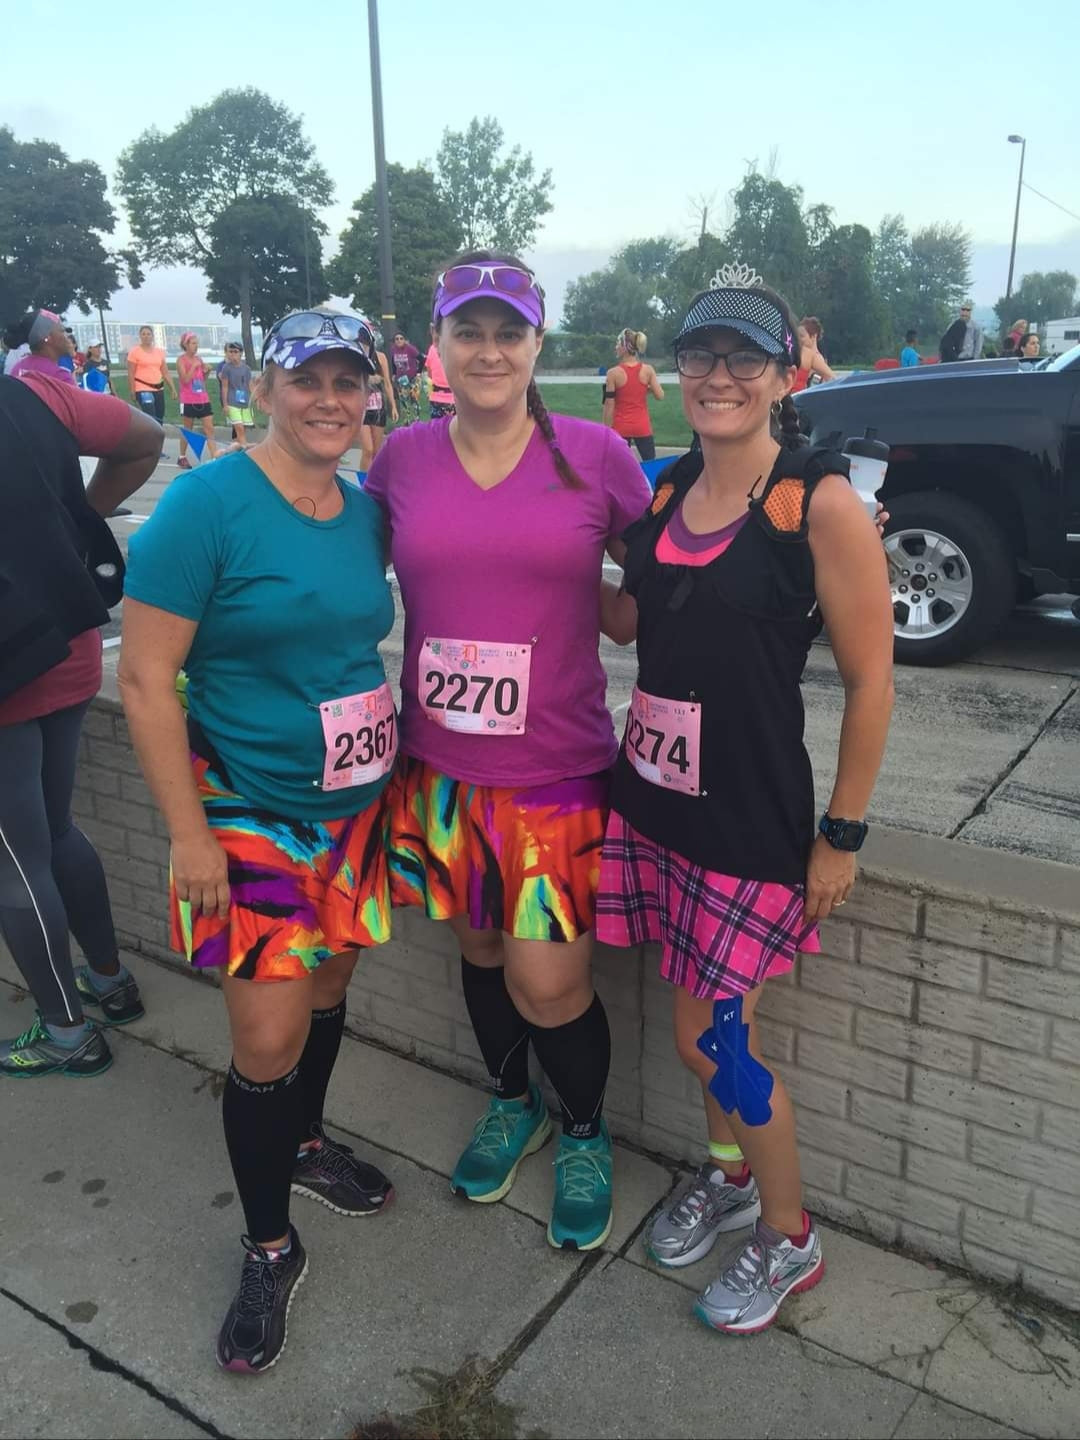 Melissa Marowelli posing at a race with friends wearing Bolder Athletic Wear skirts